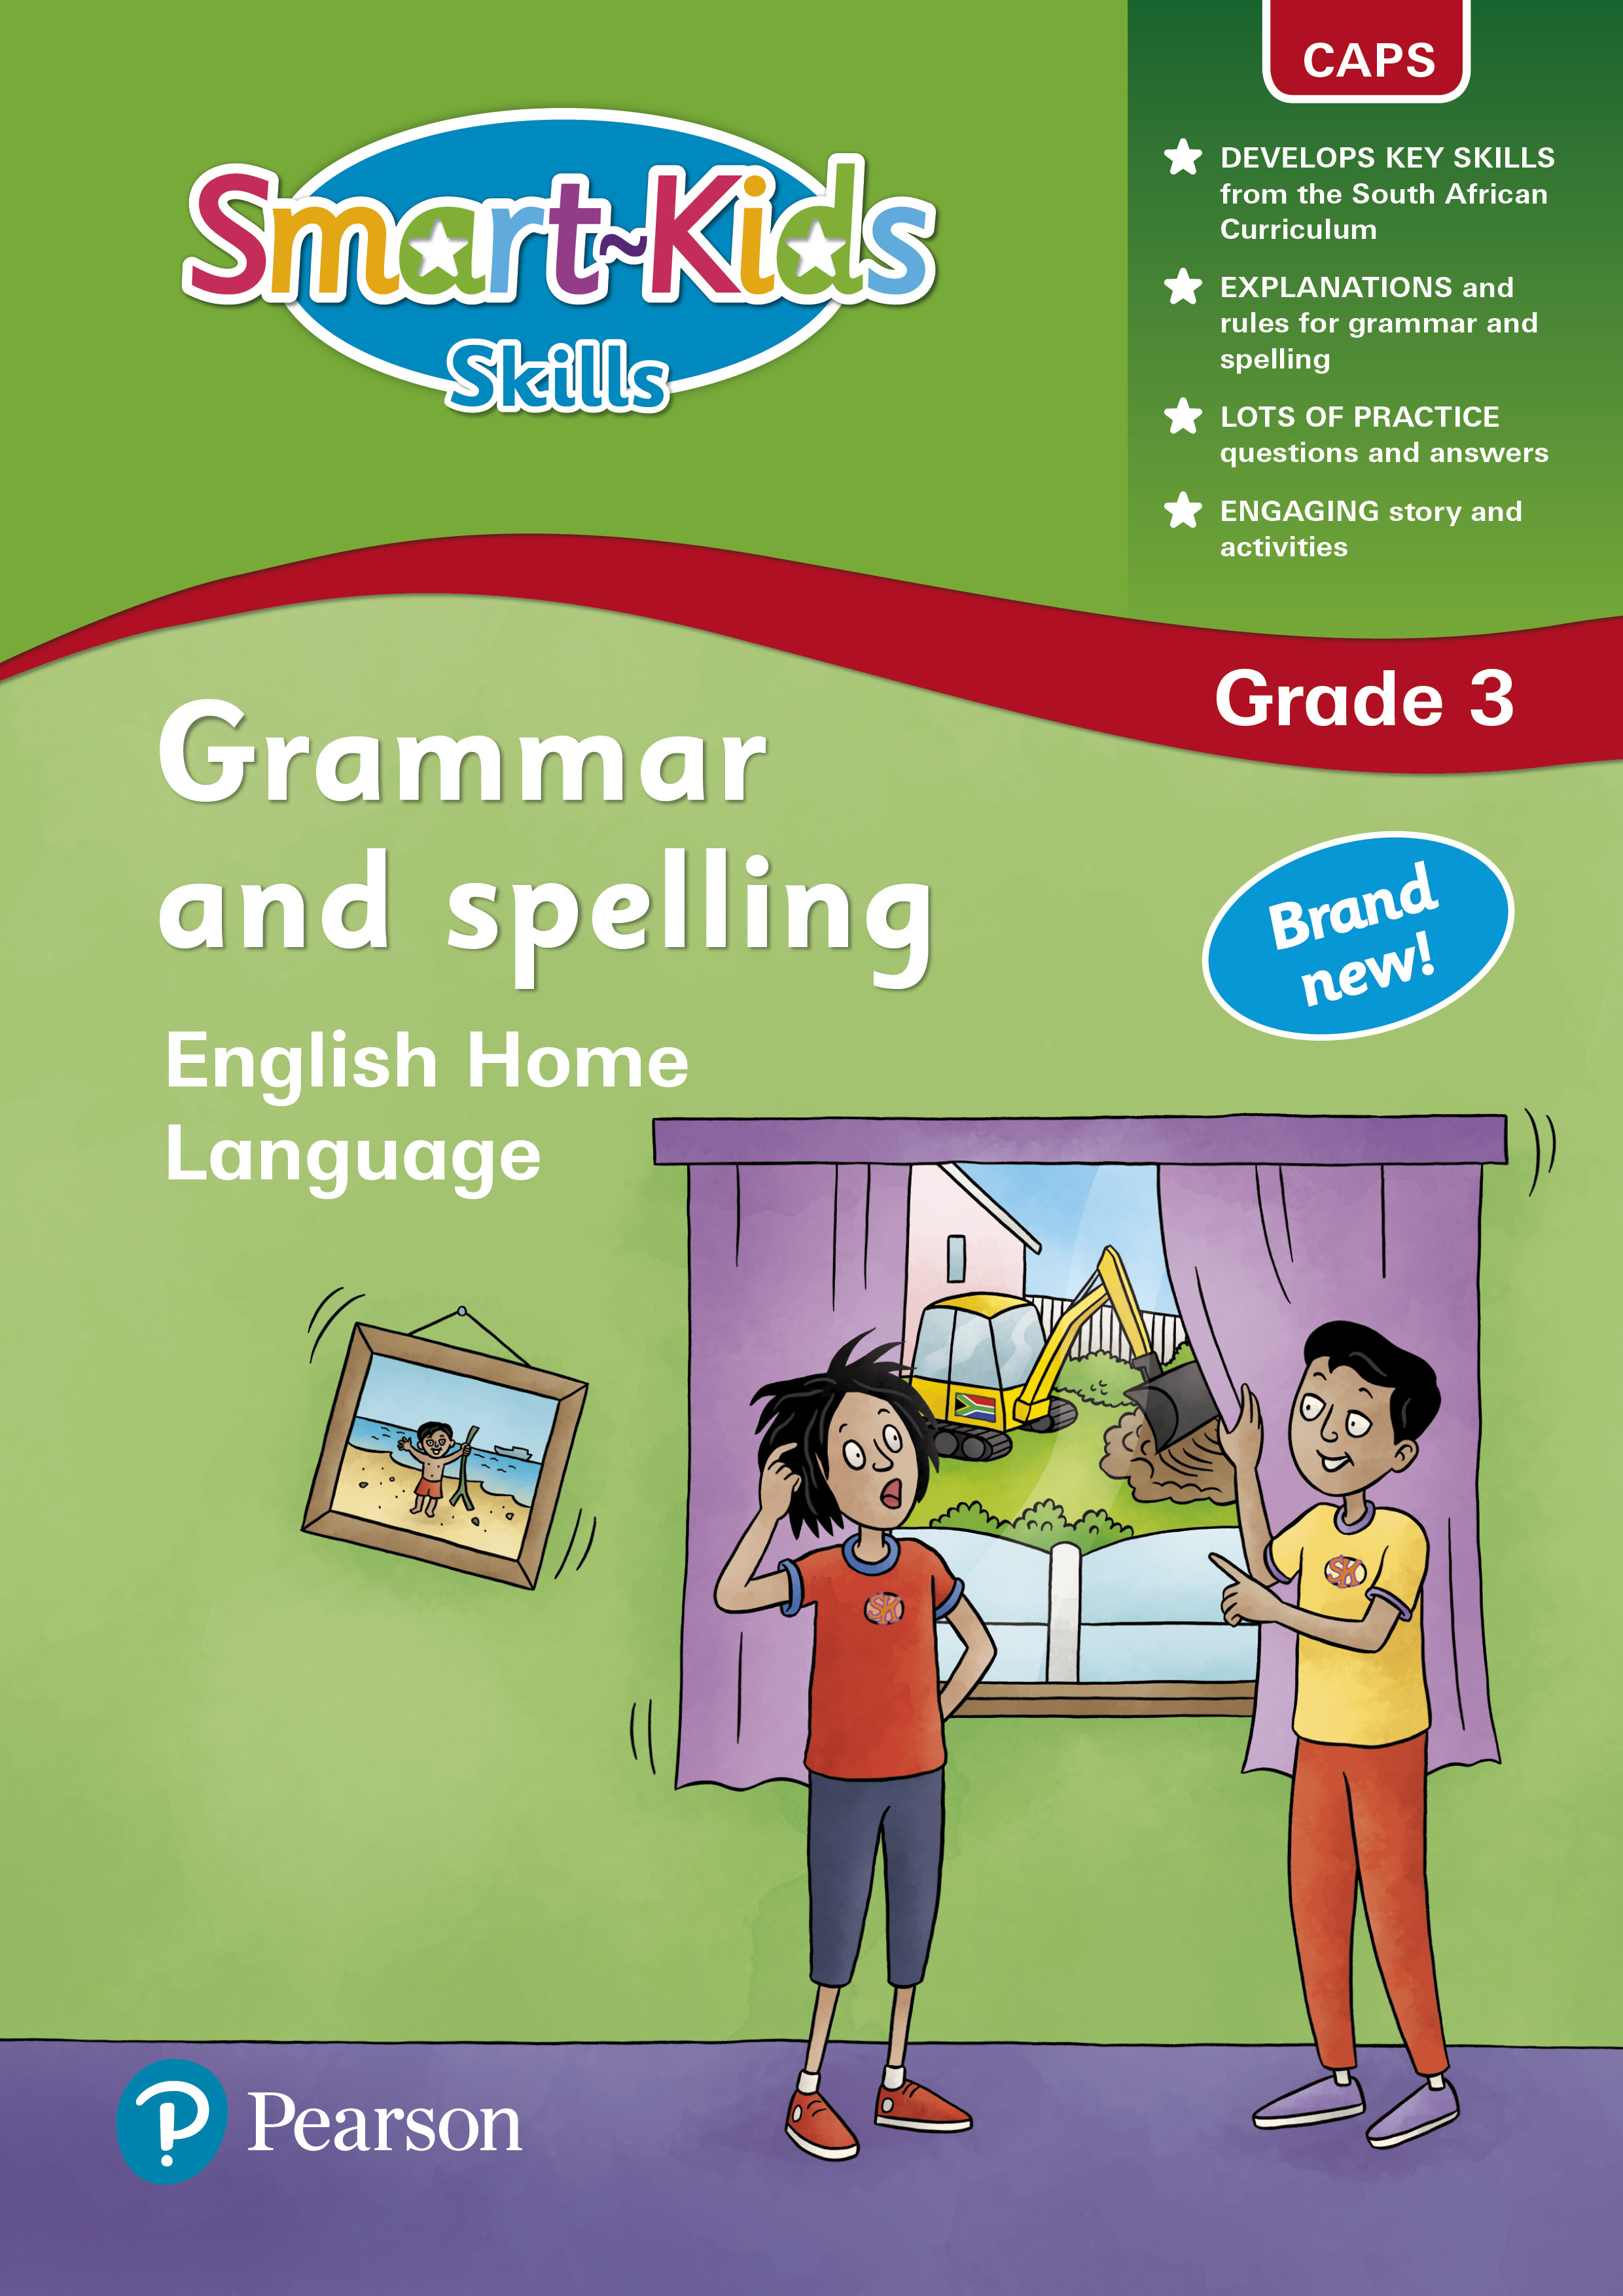 Smart Kids Skills Grammar And Spelling Grade 3